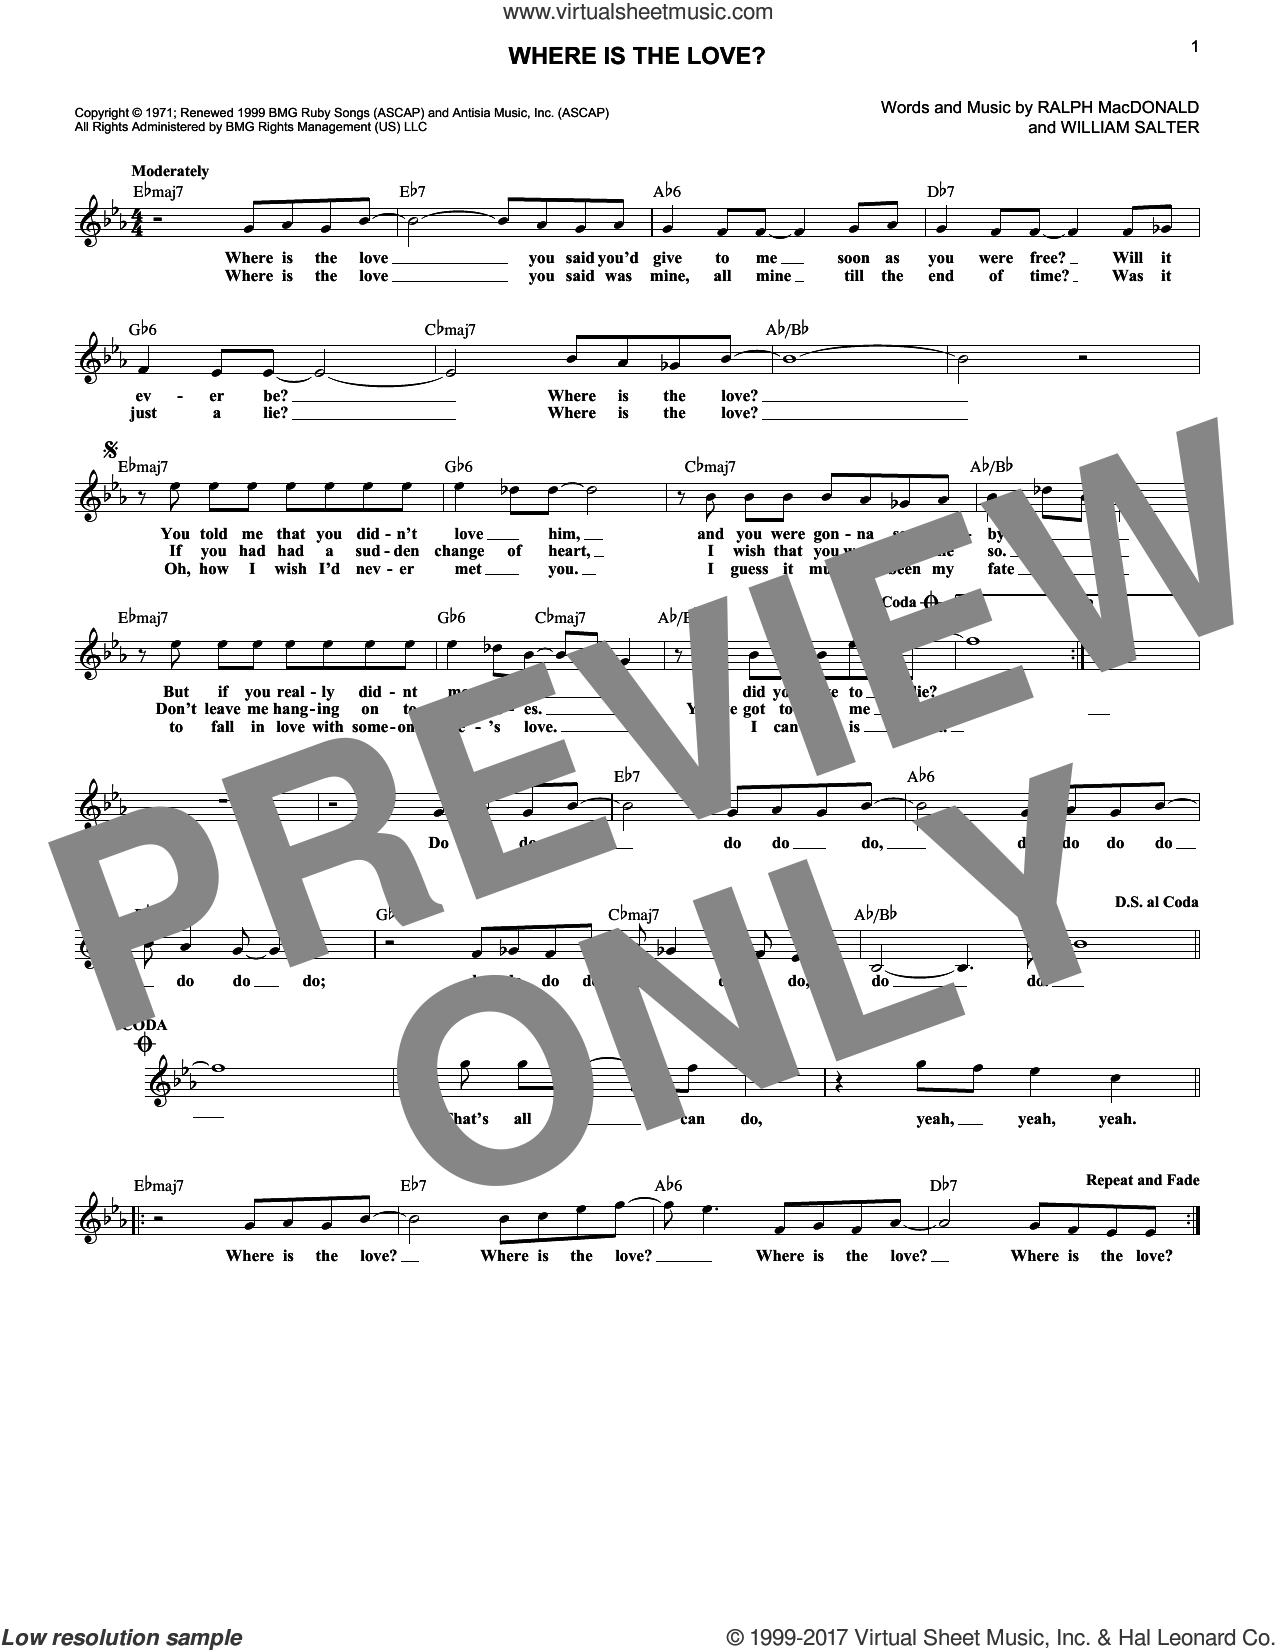 Where Is The Love? sheet music for voice and other instruments (fake book) by Roberta Flack and Donny Hathaway, Ralph MacDonald and William Salter, intermediate